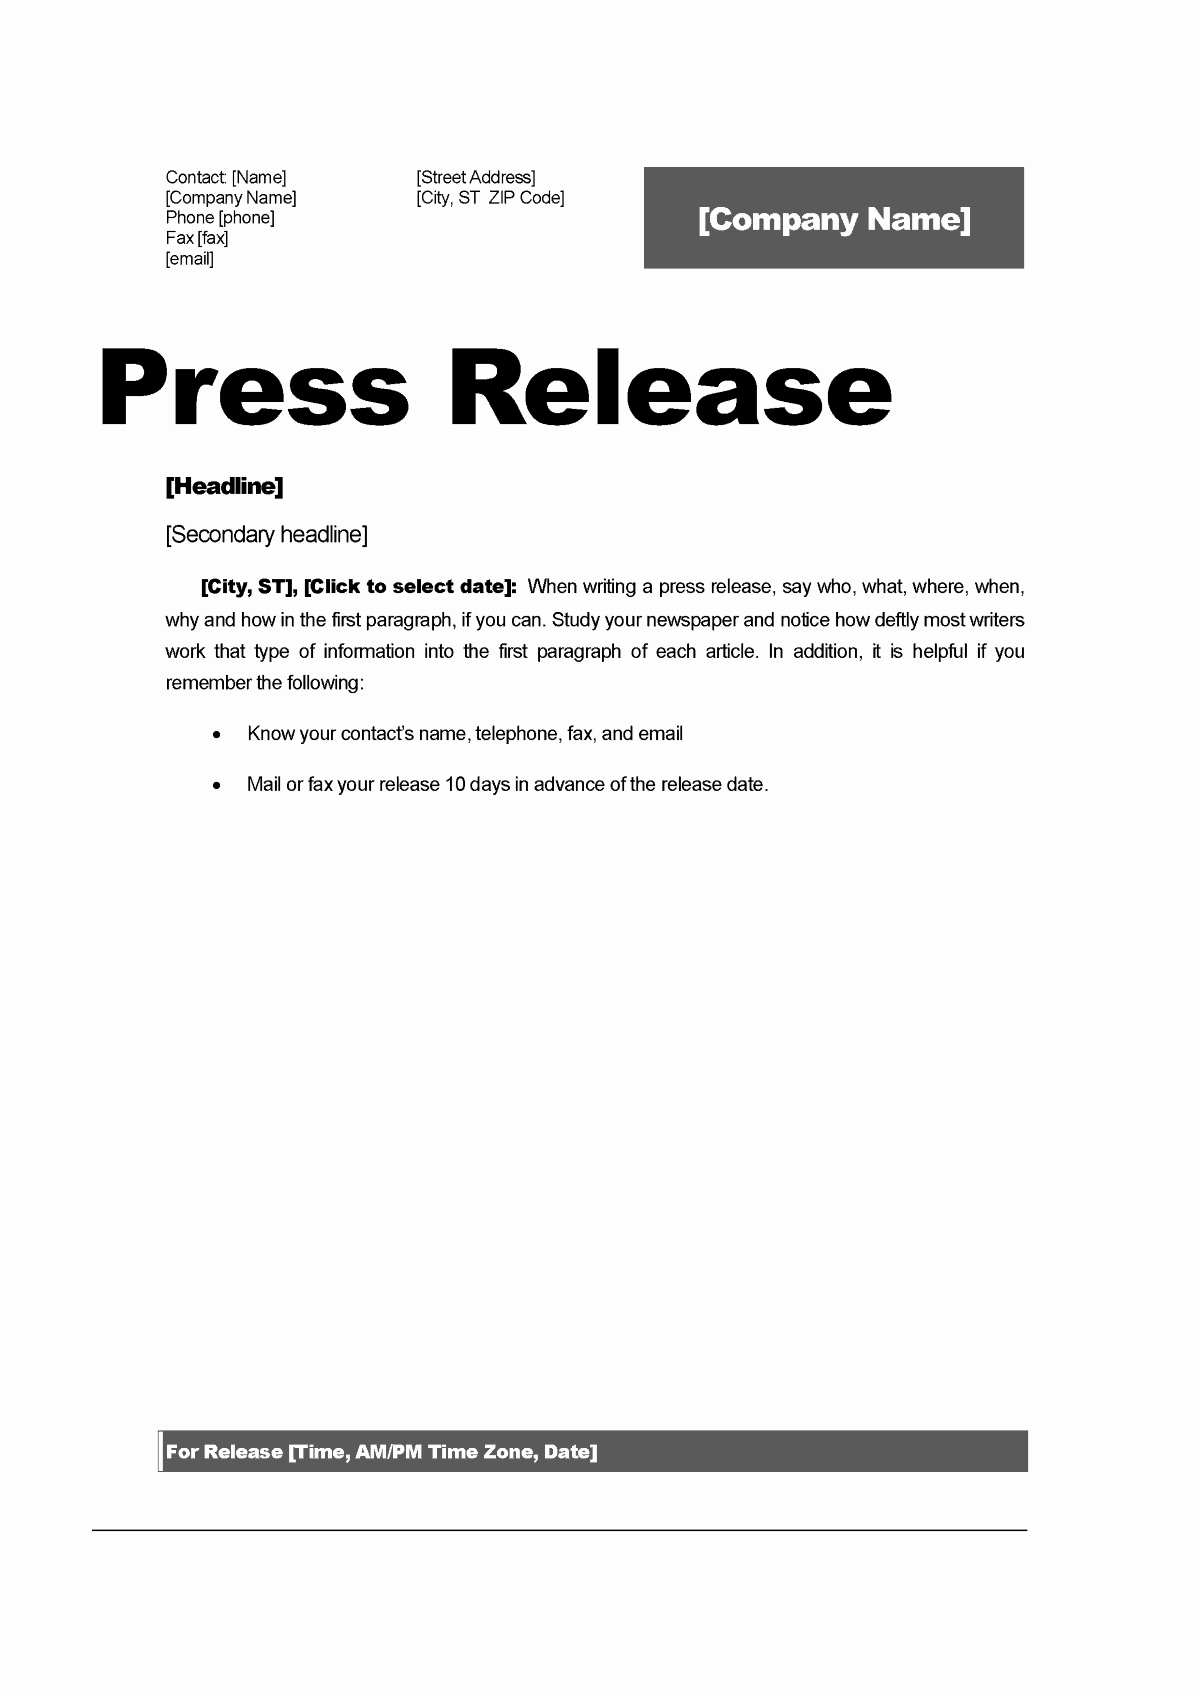 Press Release Template Free Lovely top 5 Resources to Get Free Press Release Templates Word